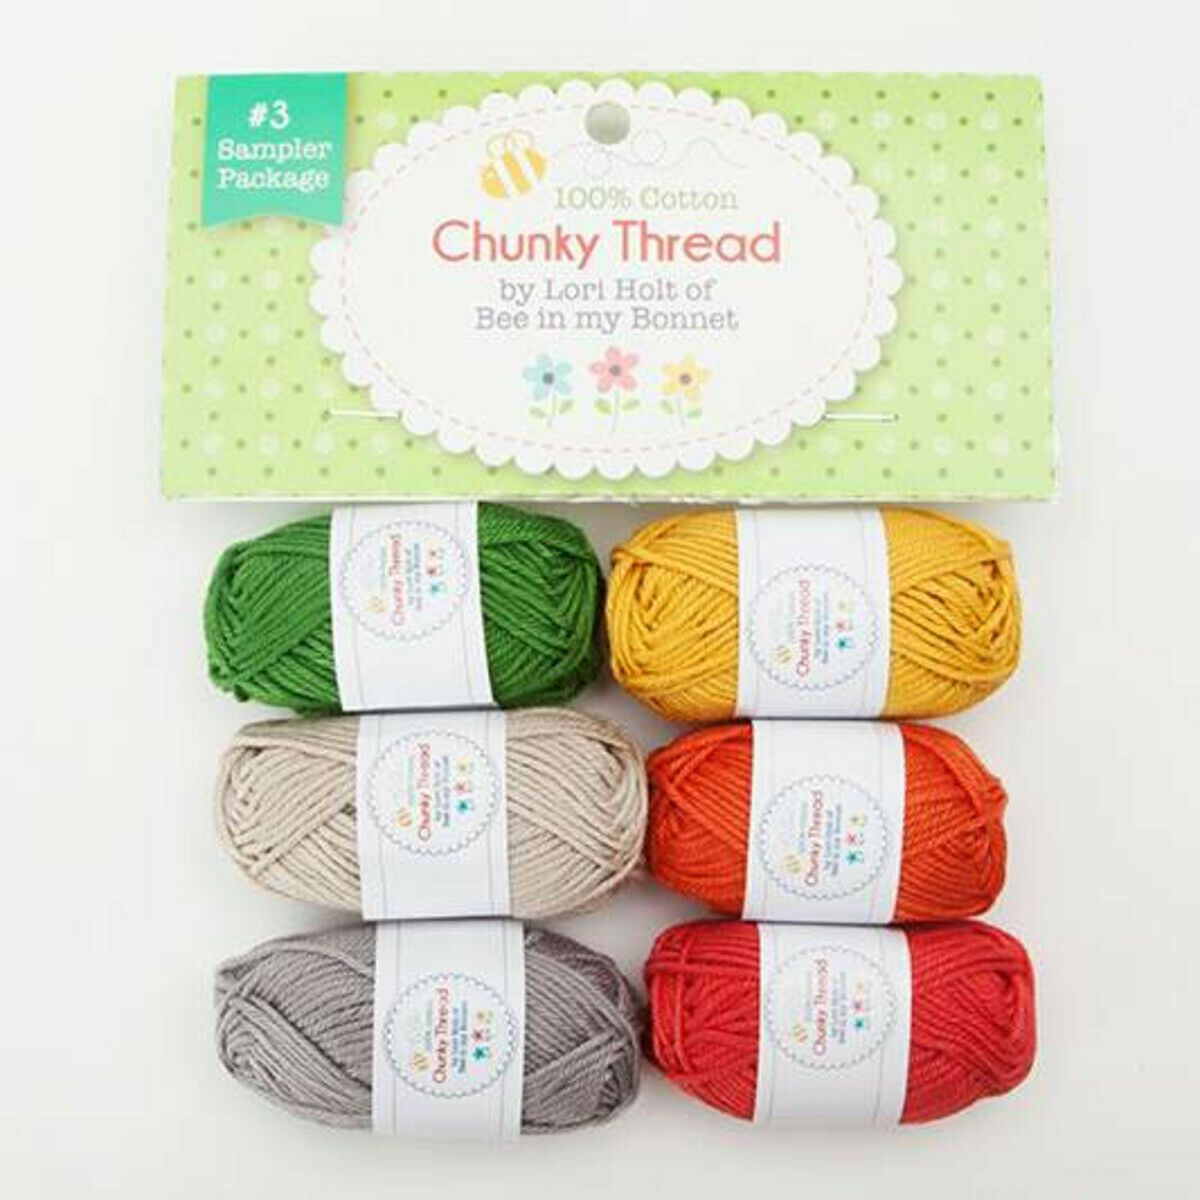 Chunky Thread by Lori Holt Sample Package #3 100% Cotton